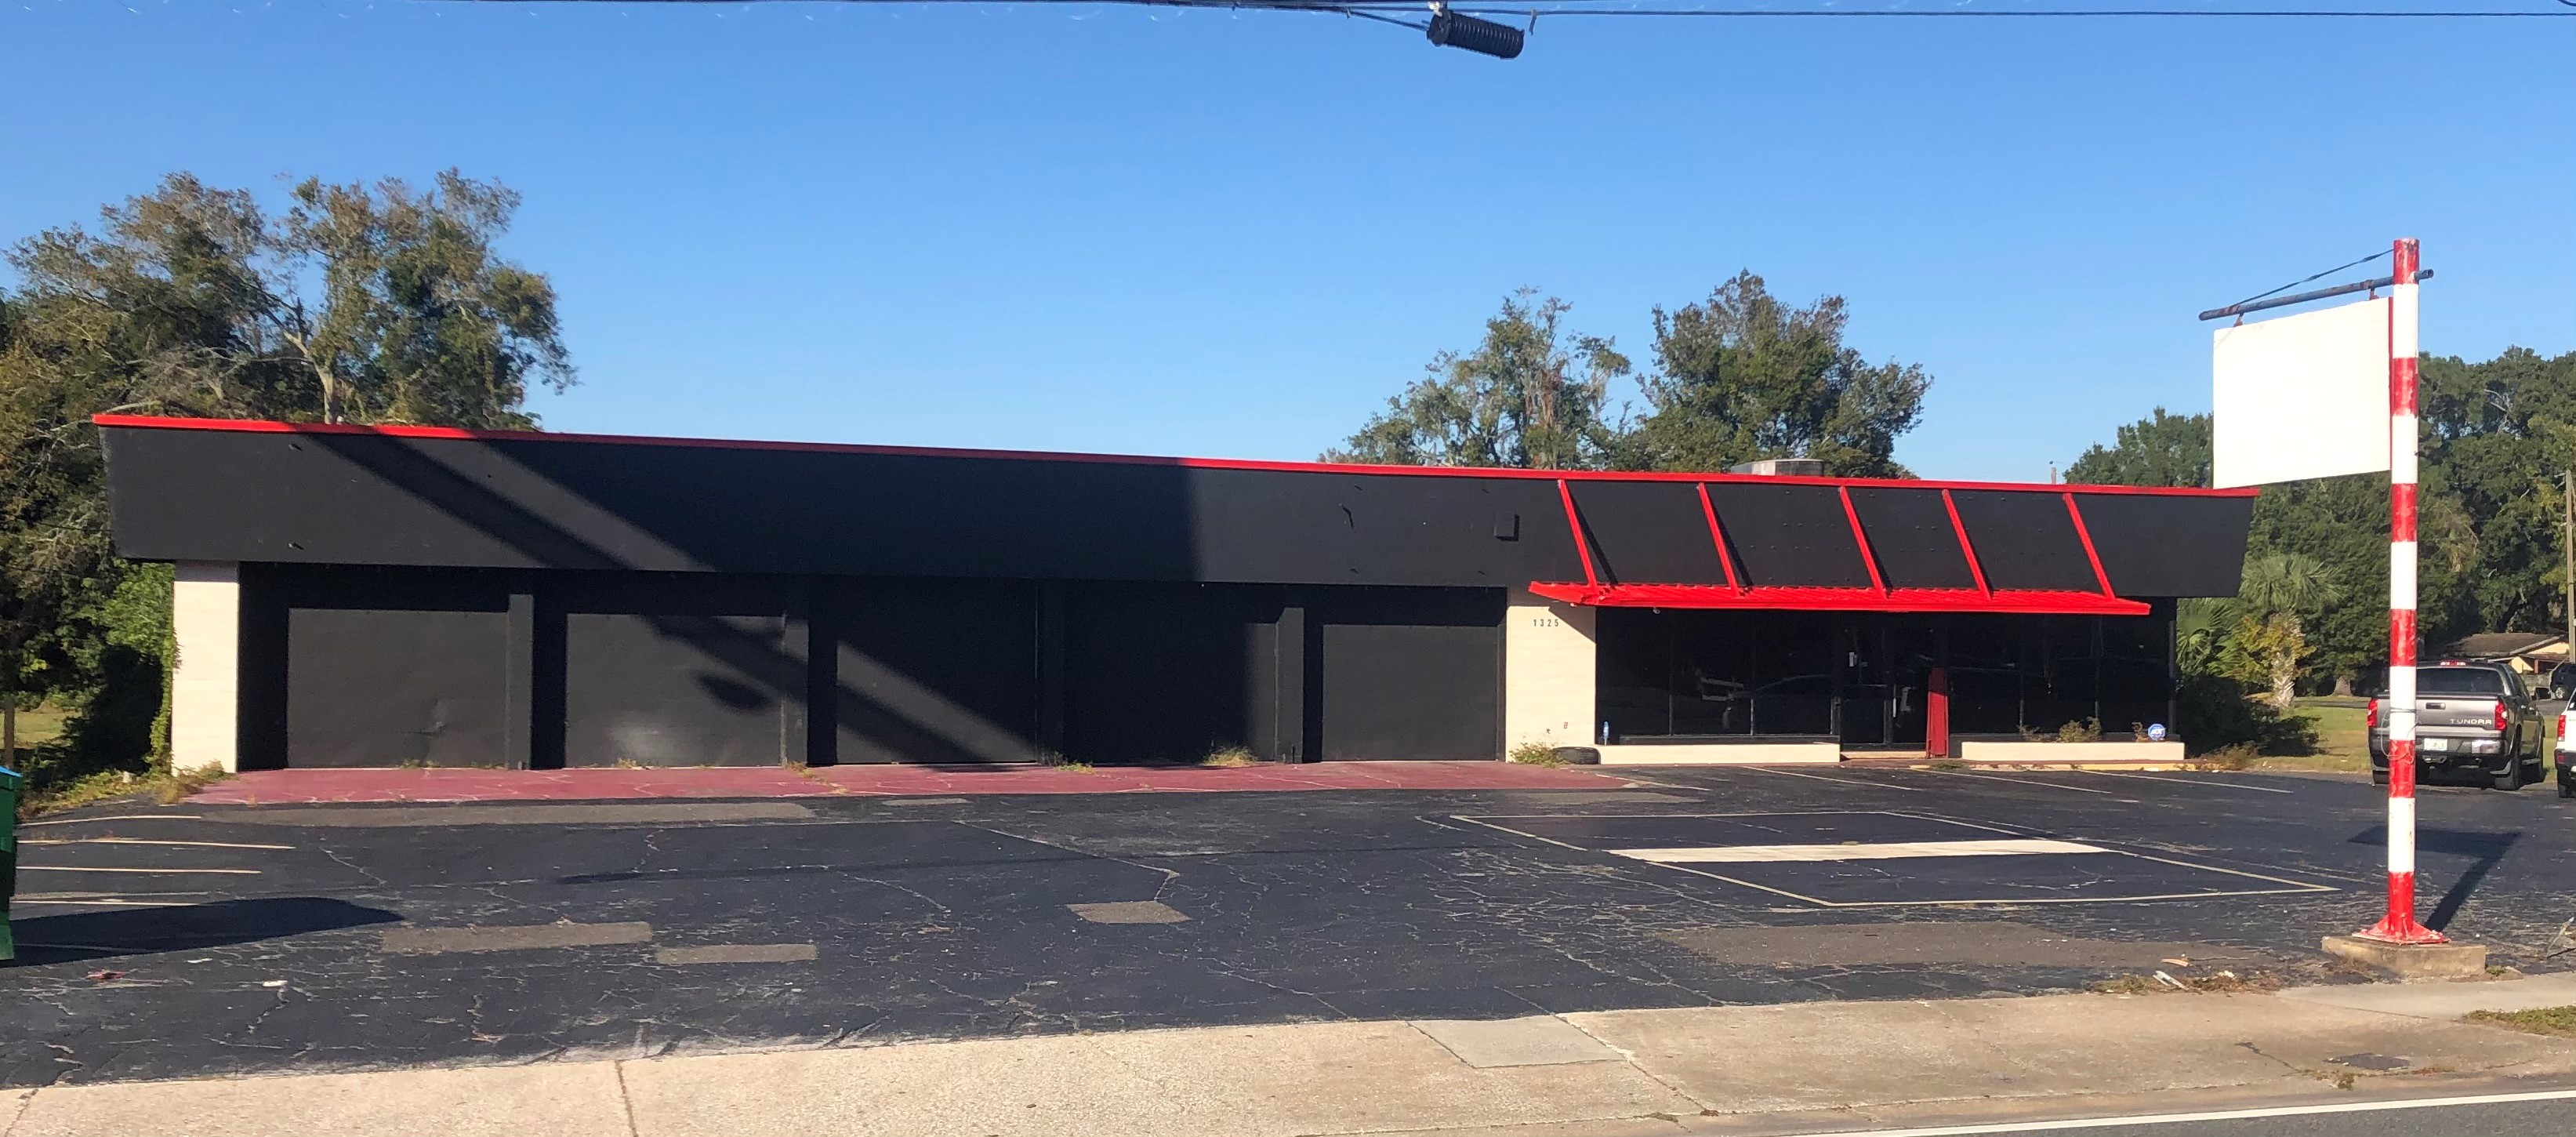 Automotive Service Building with outside Storage